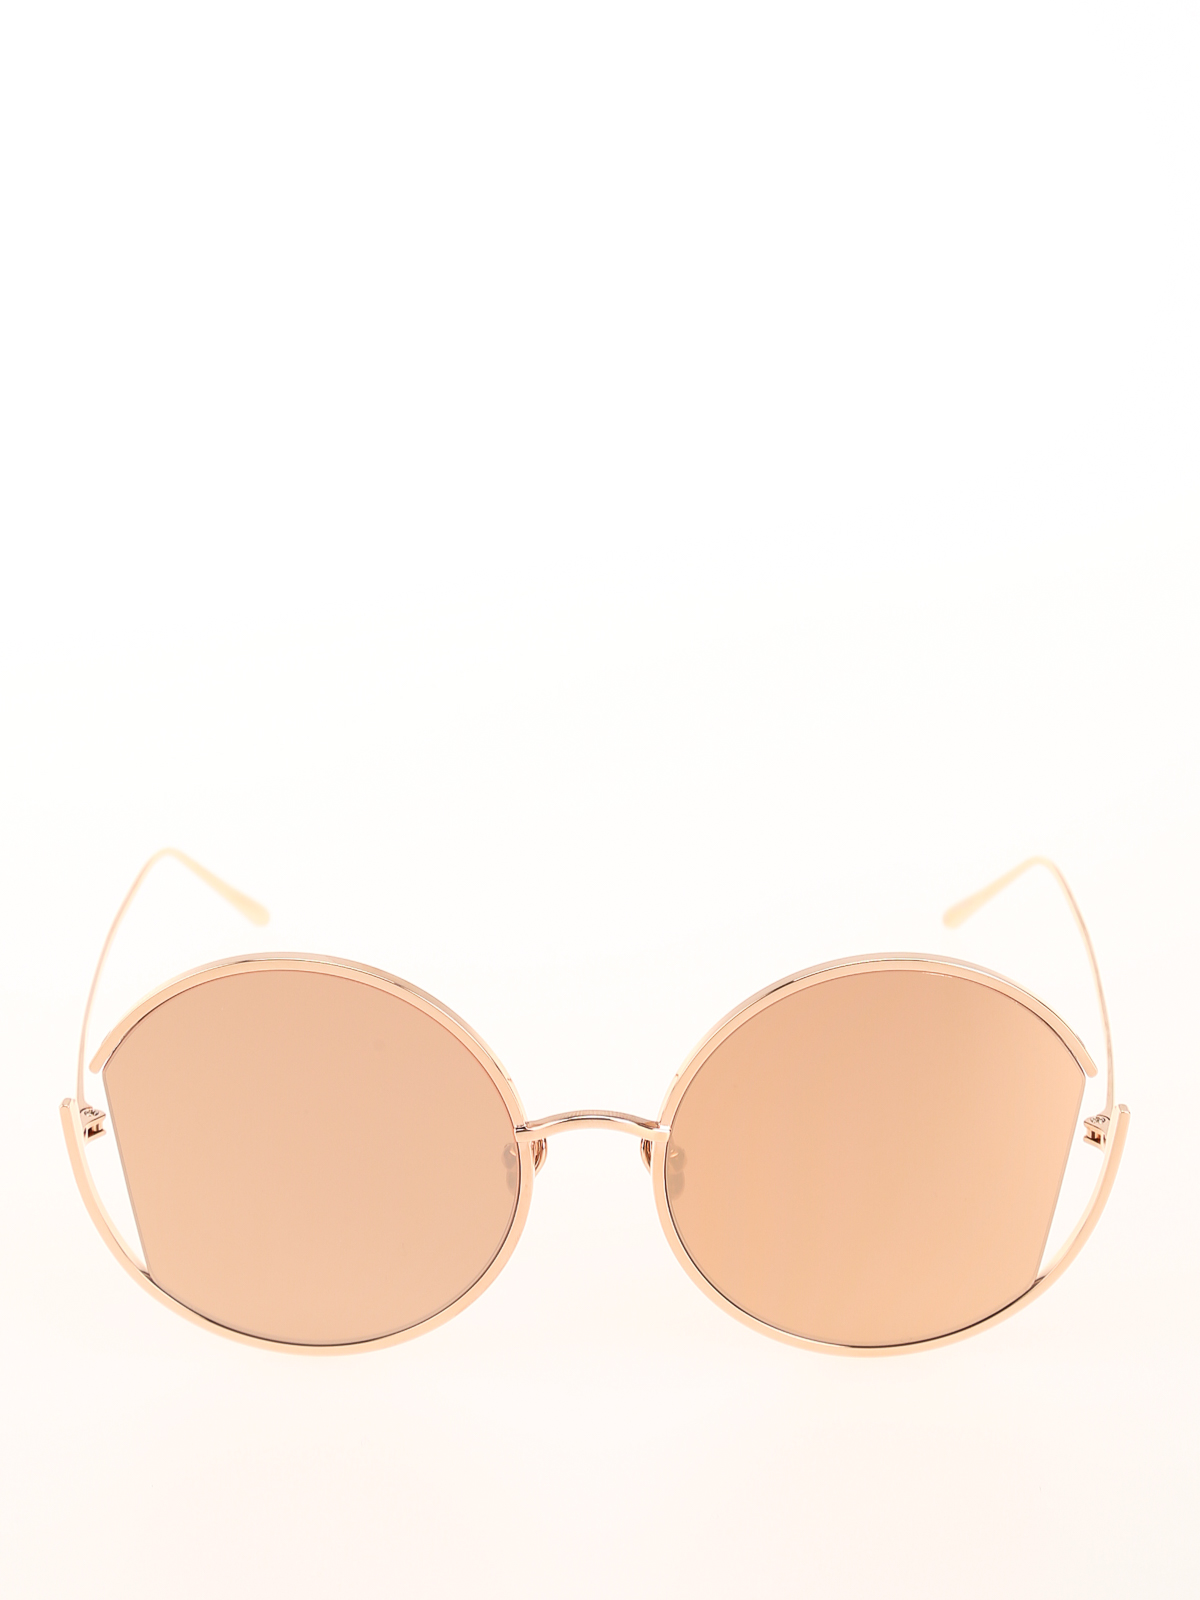 699666582baf iKRIX LINDA FARROW  sunglasses - Quarry rose gold-plated titanium sunglasses